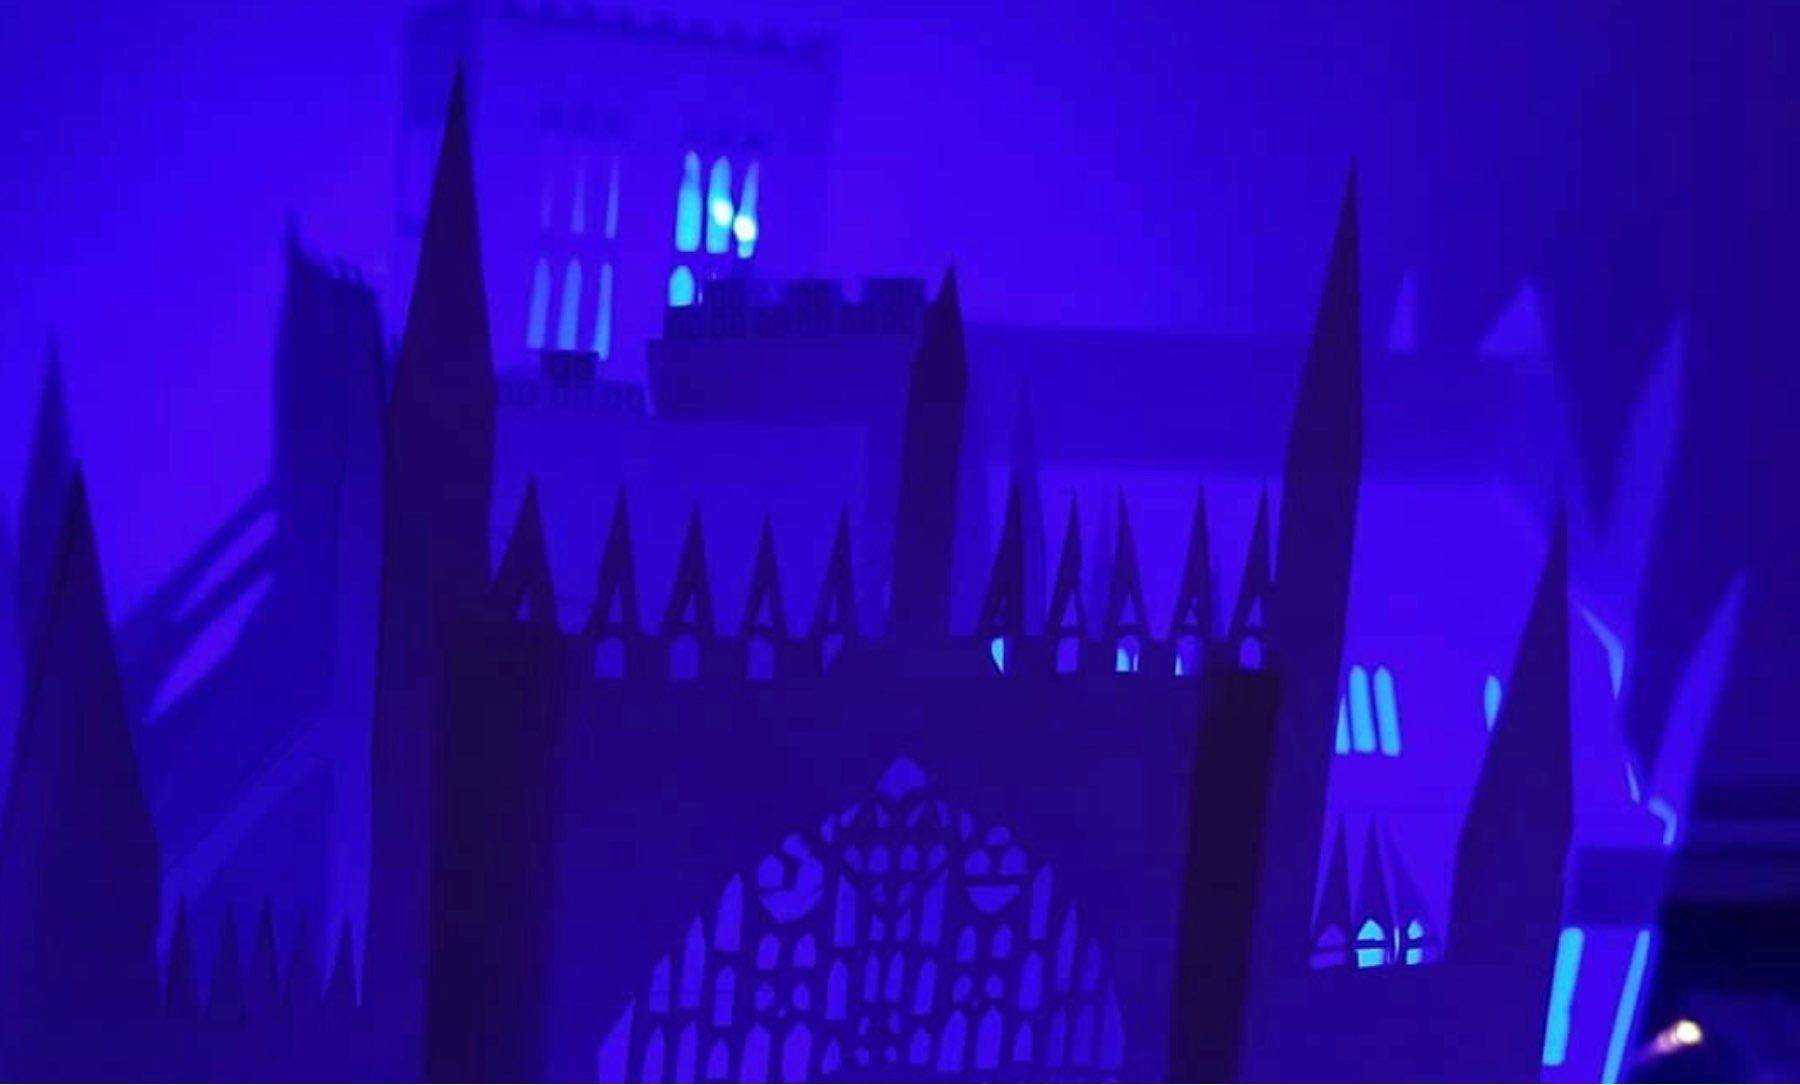 An image of a paper model of York Minster at night in a purple glow.